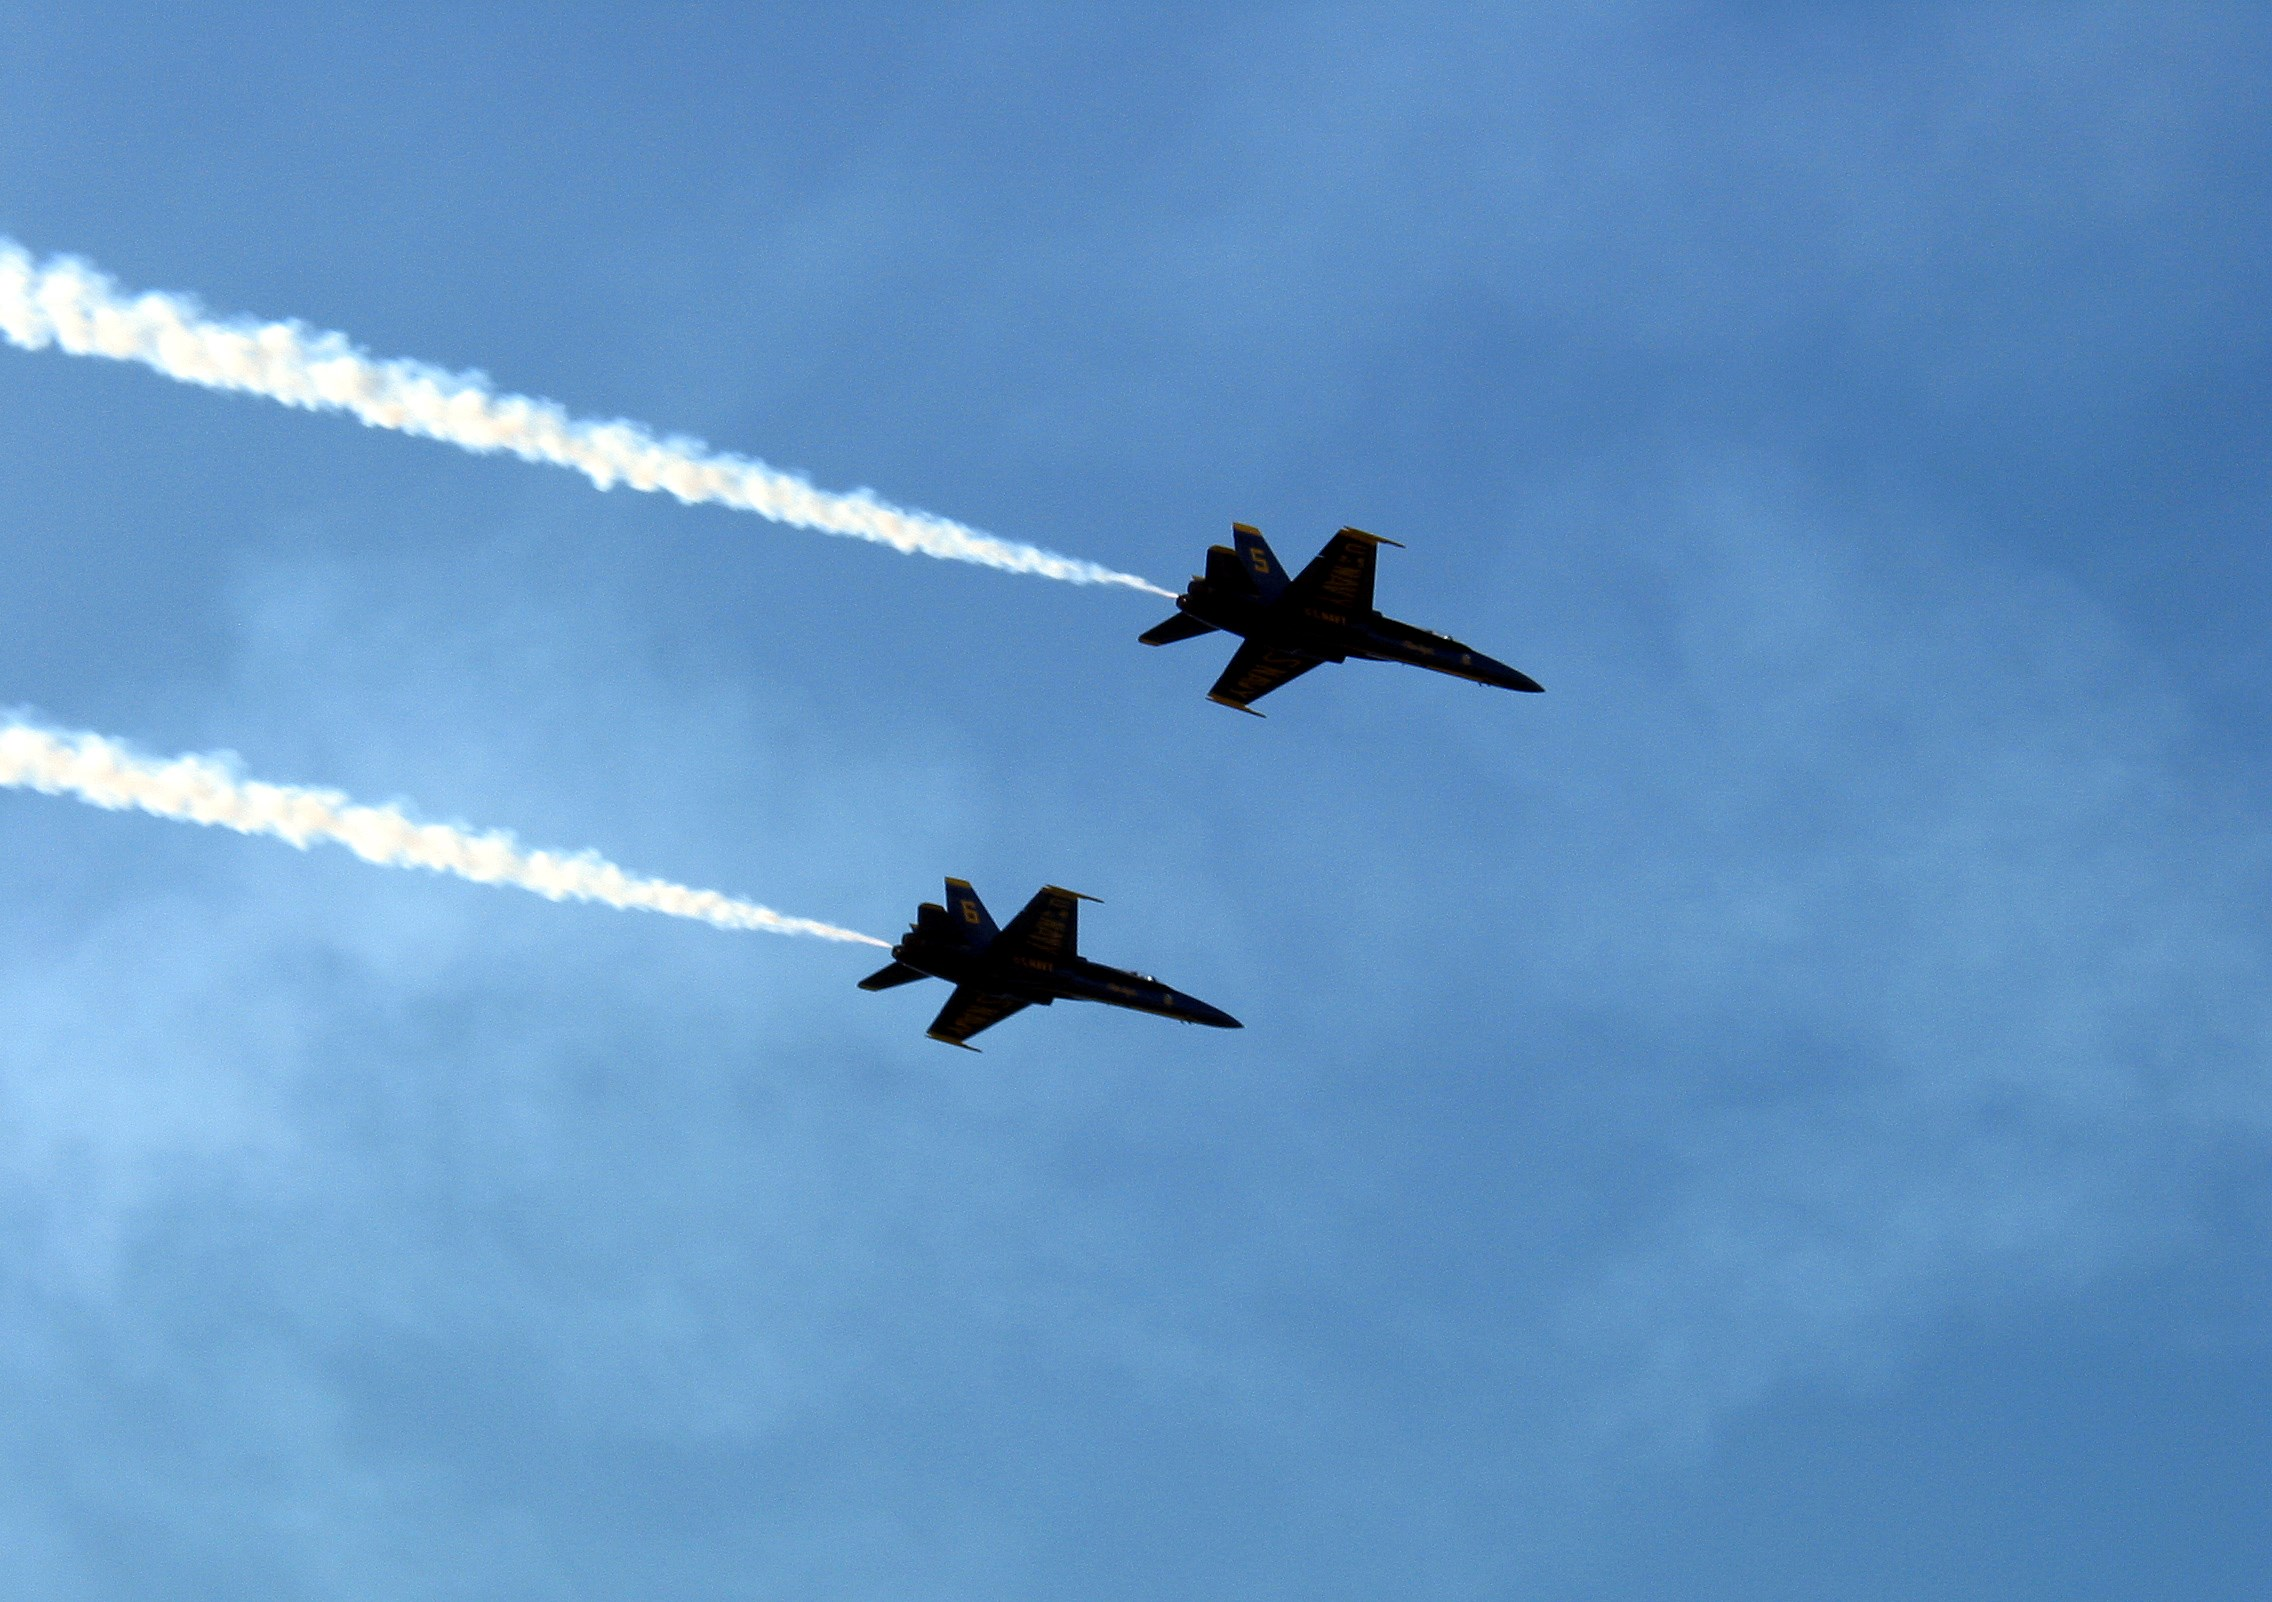 Jet fighters against a blue sky